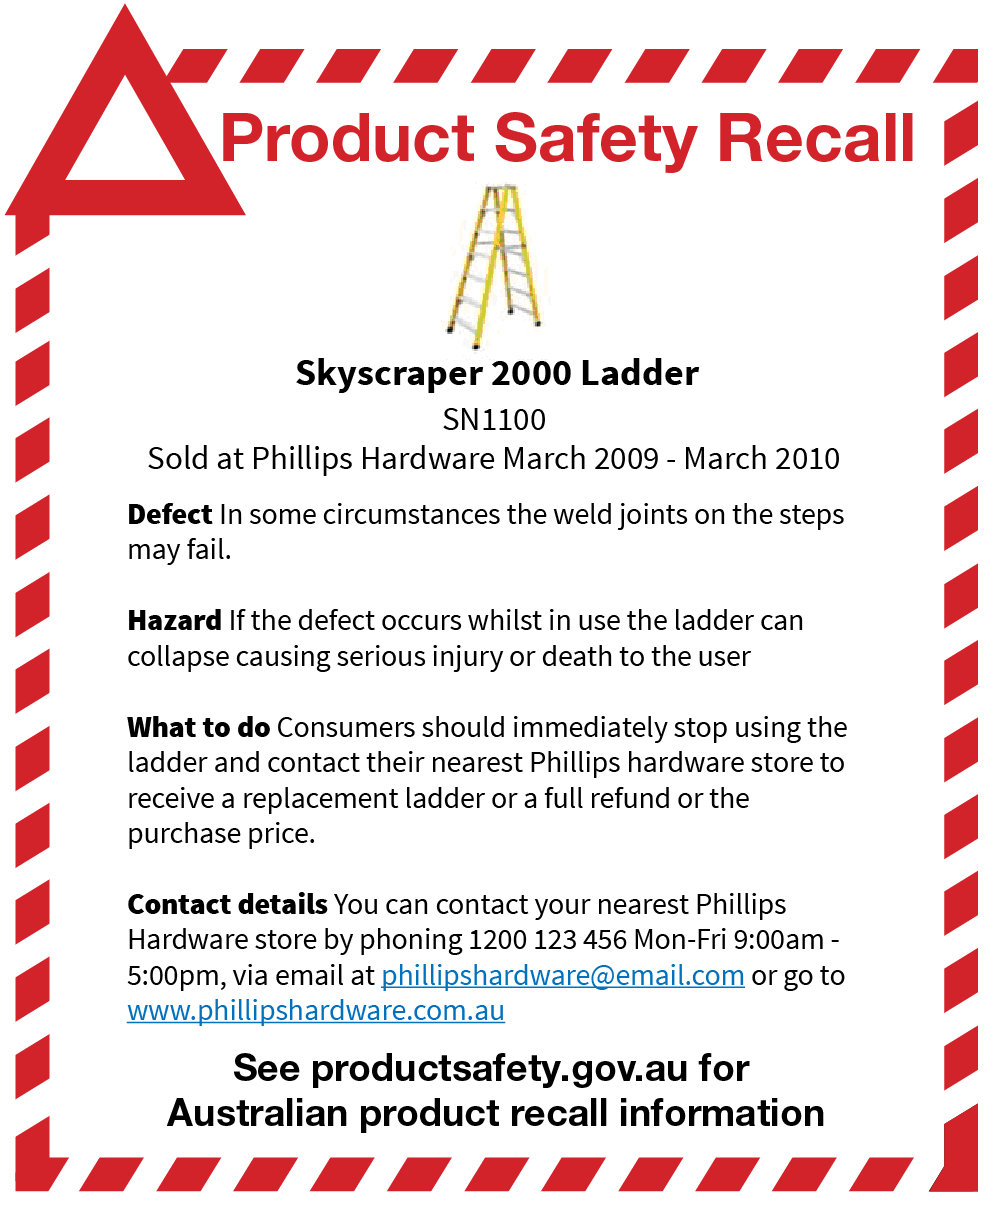 Recall advertisement templates product safety australia sample recall notice spiritdancerdesigns Gallery